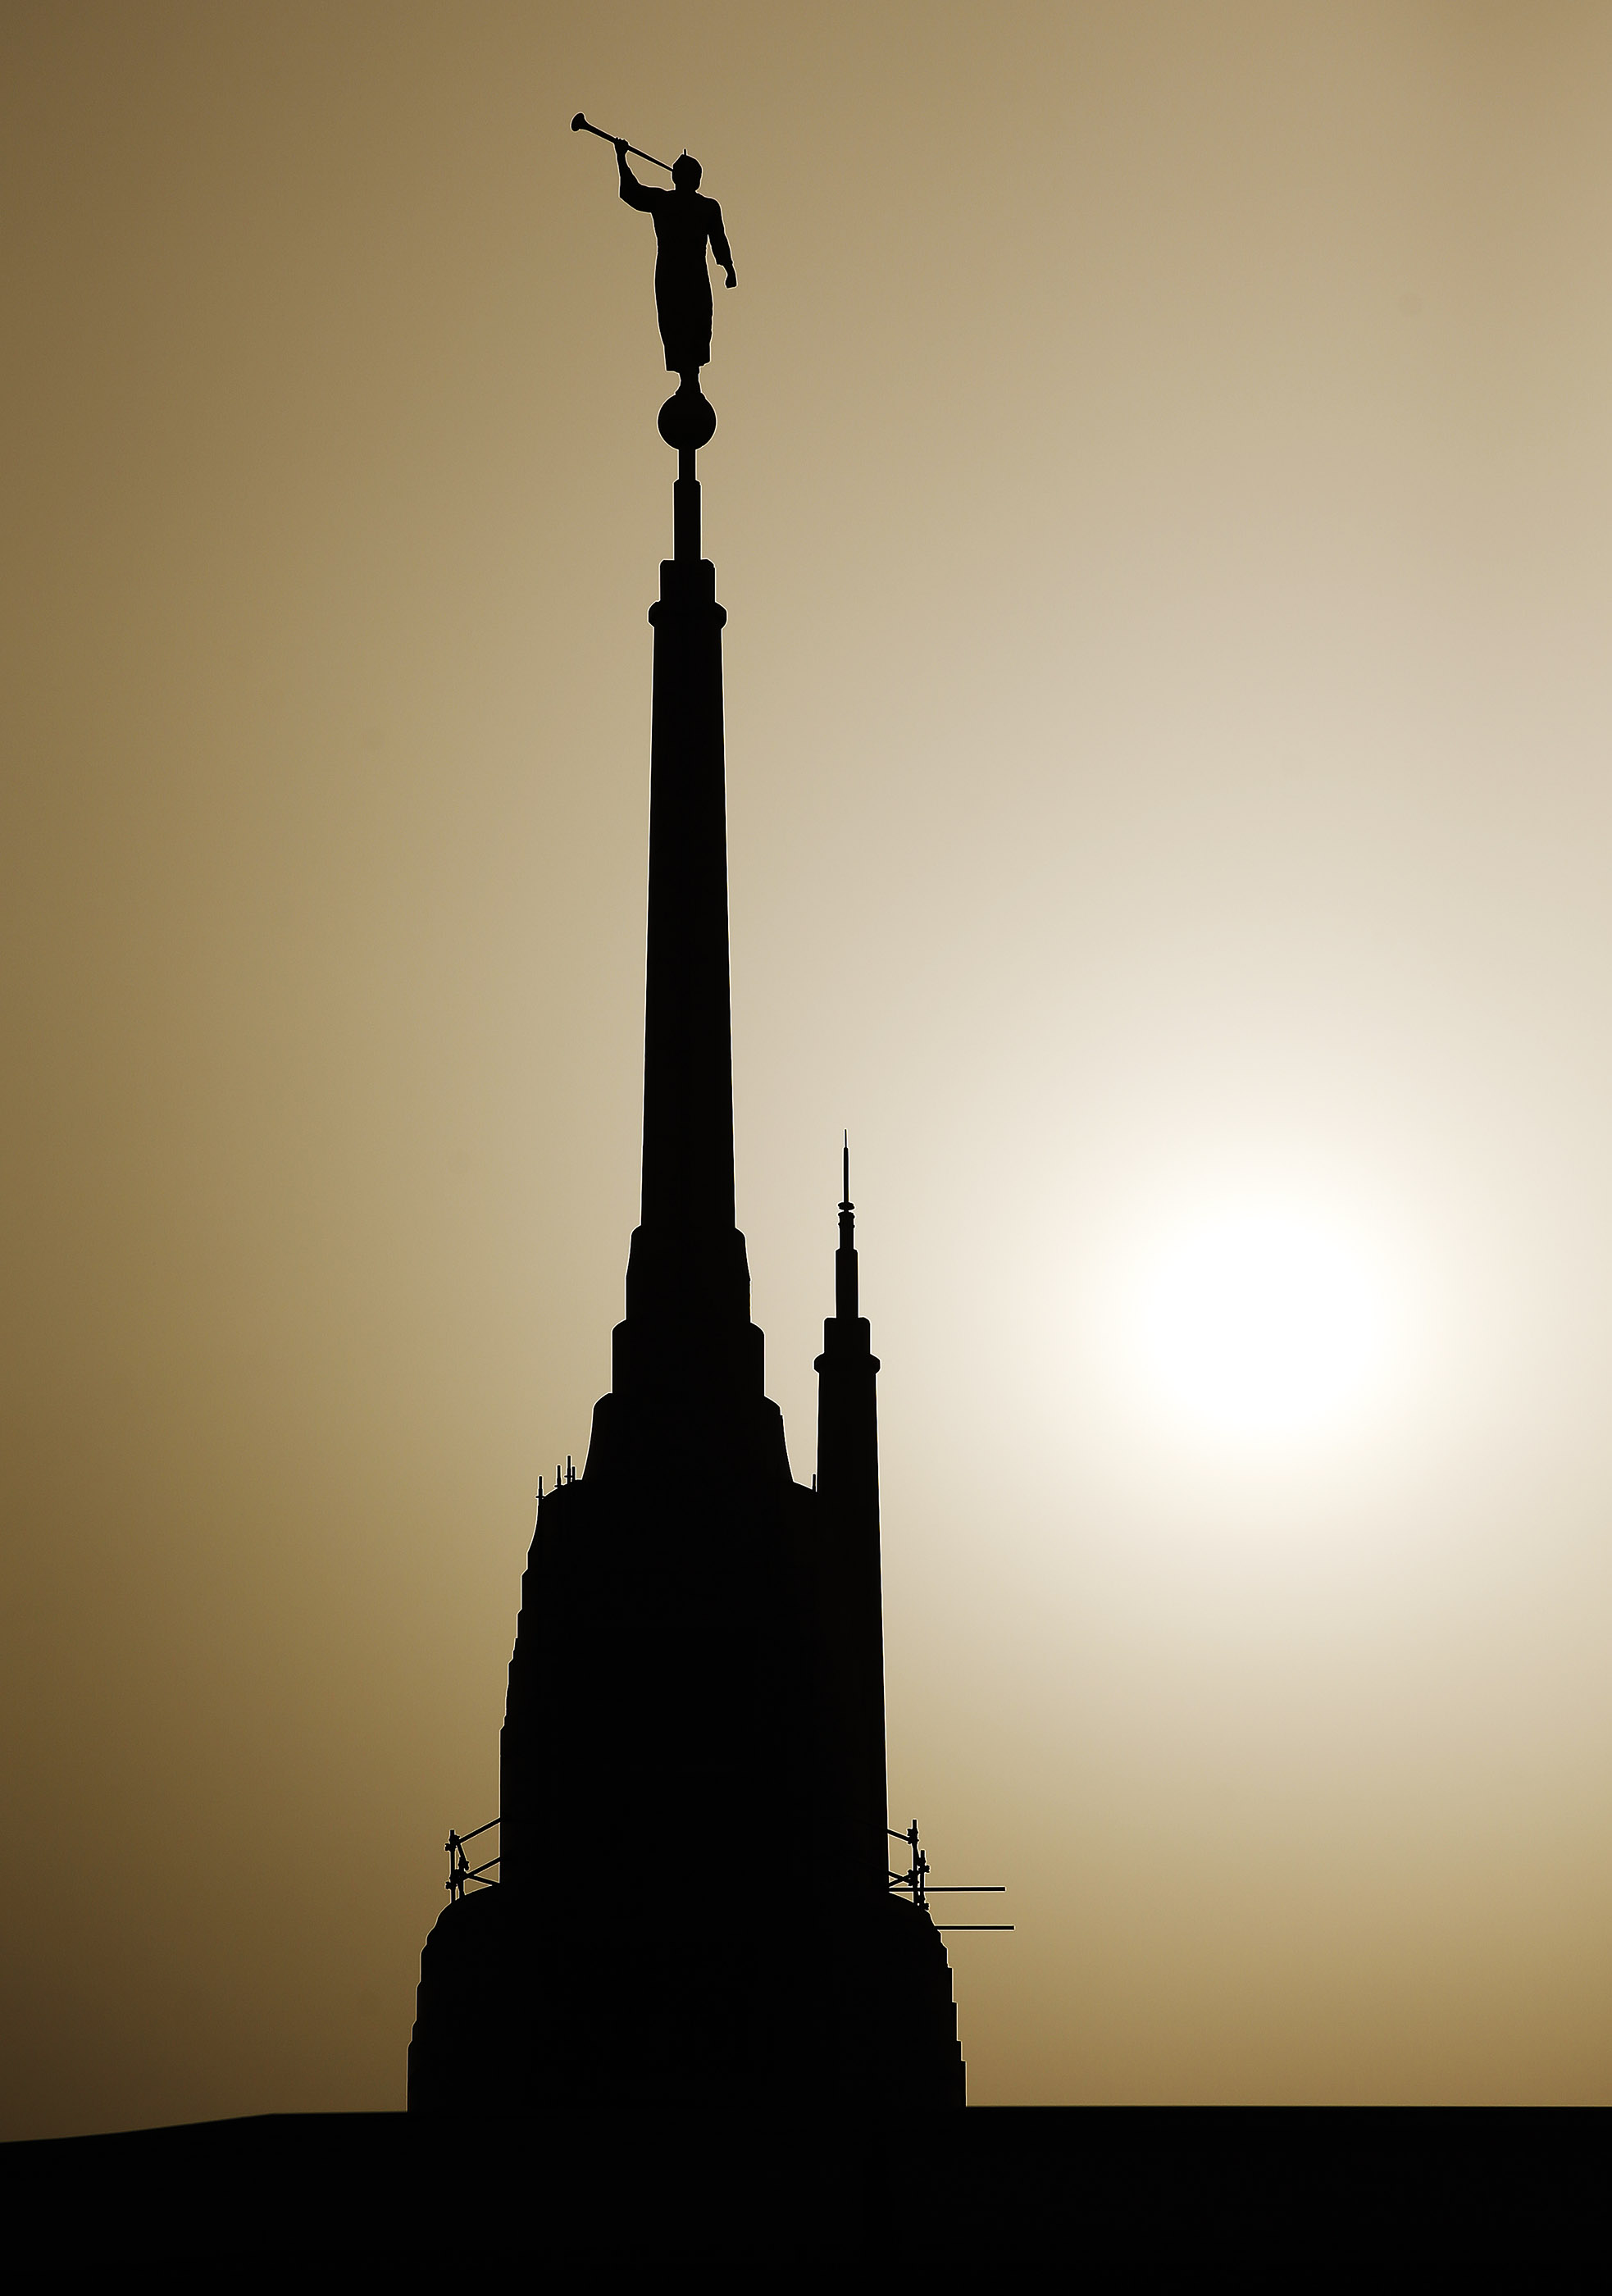 The sun sets behind the Rome Italy LDS Temple nearing completion in Rome, Italy on April 15, 2018.